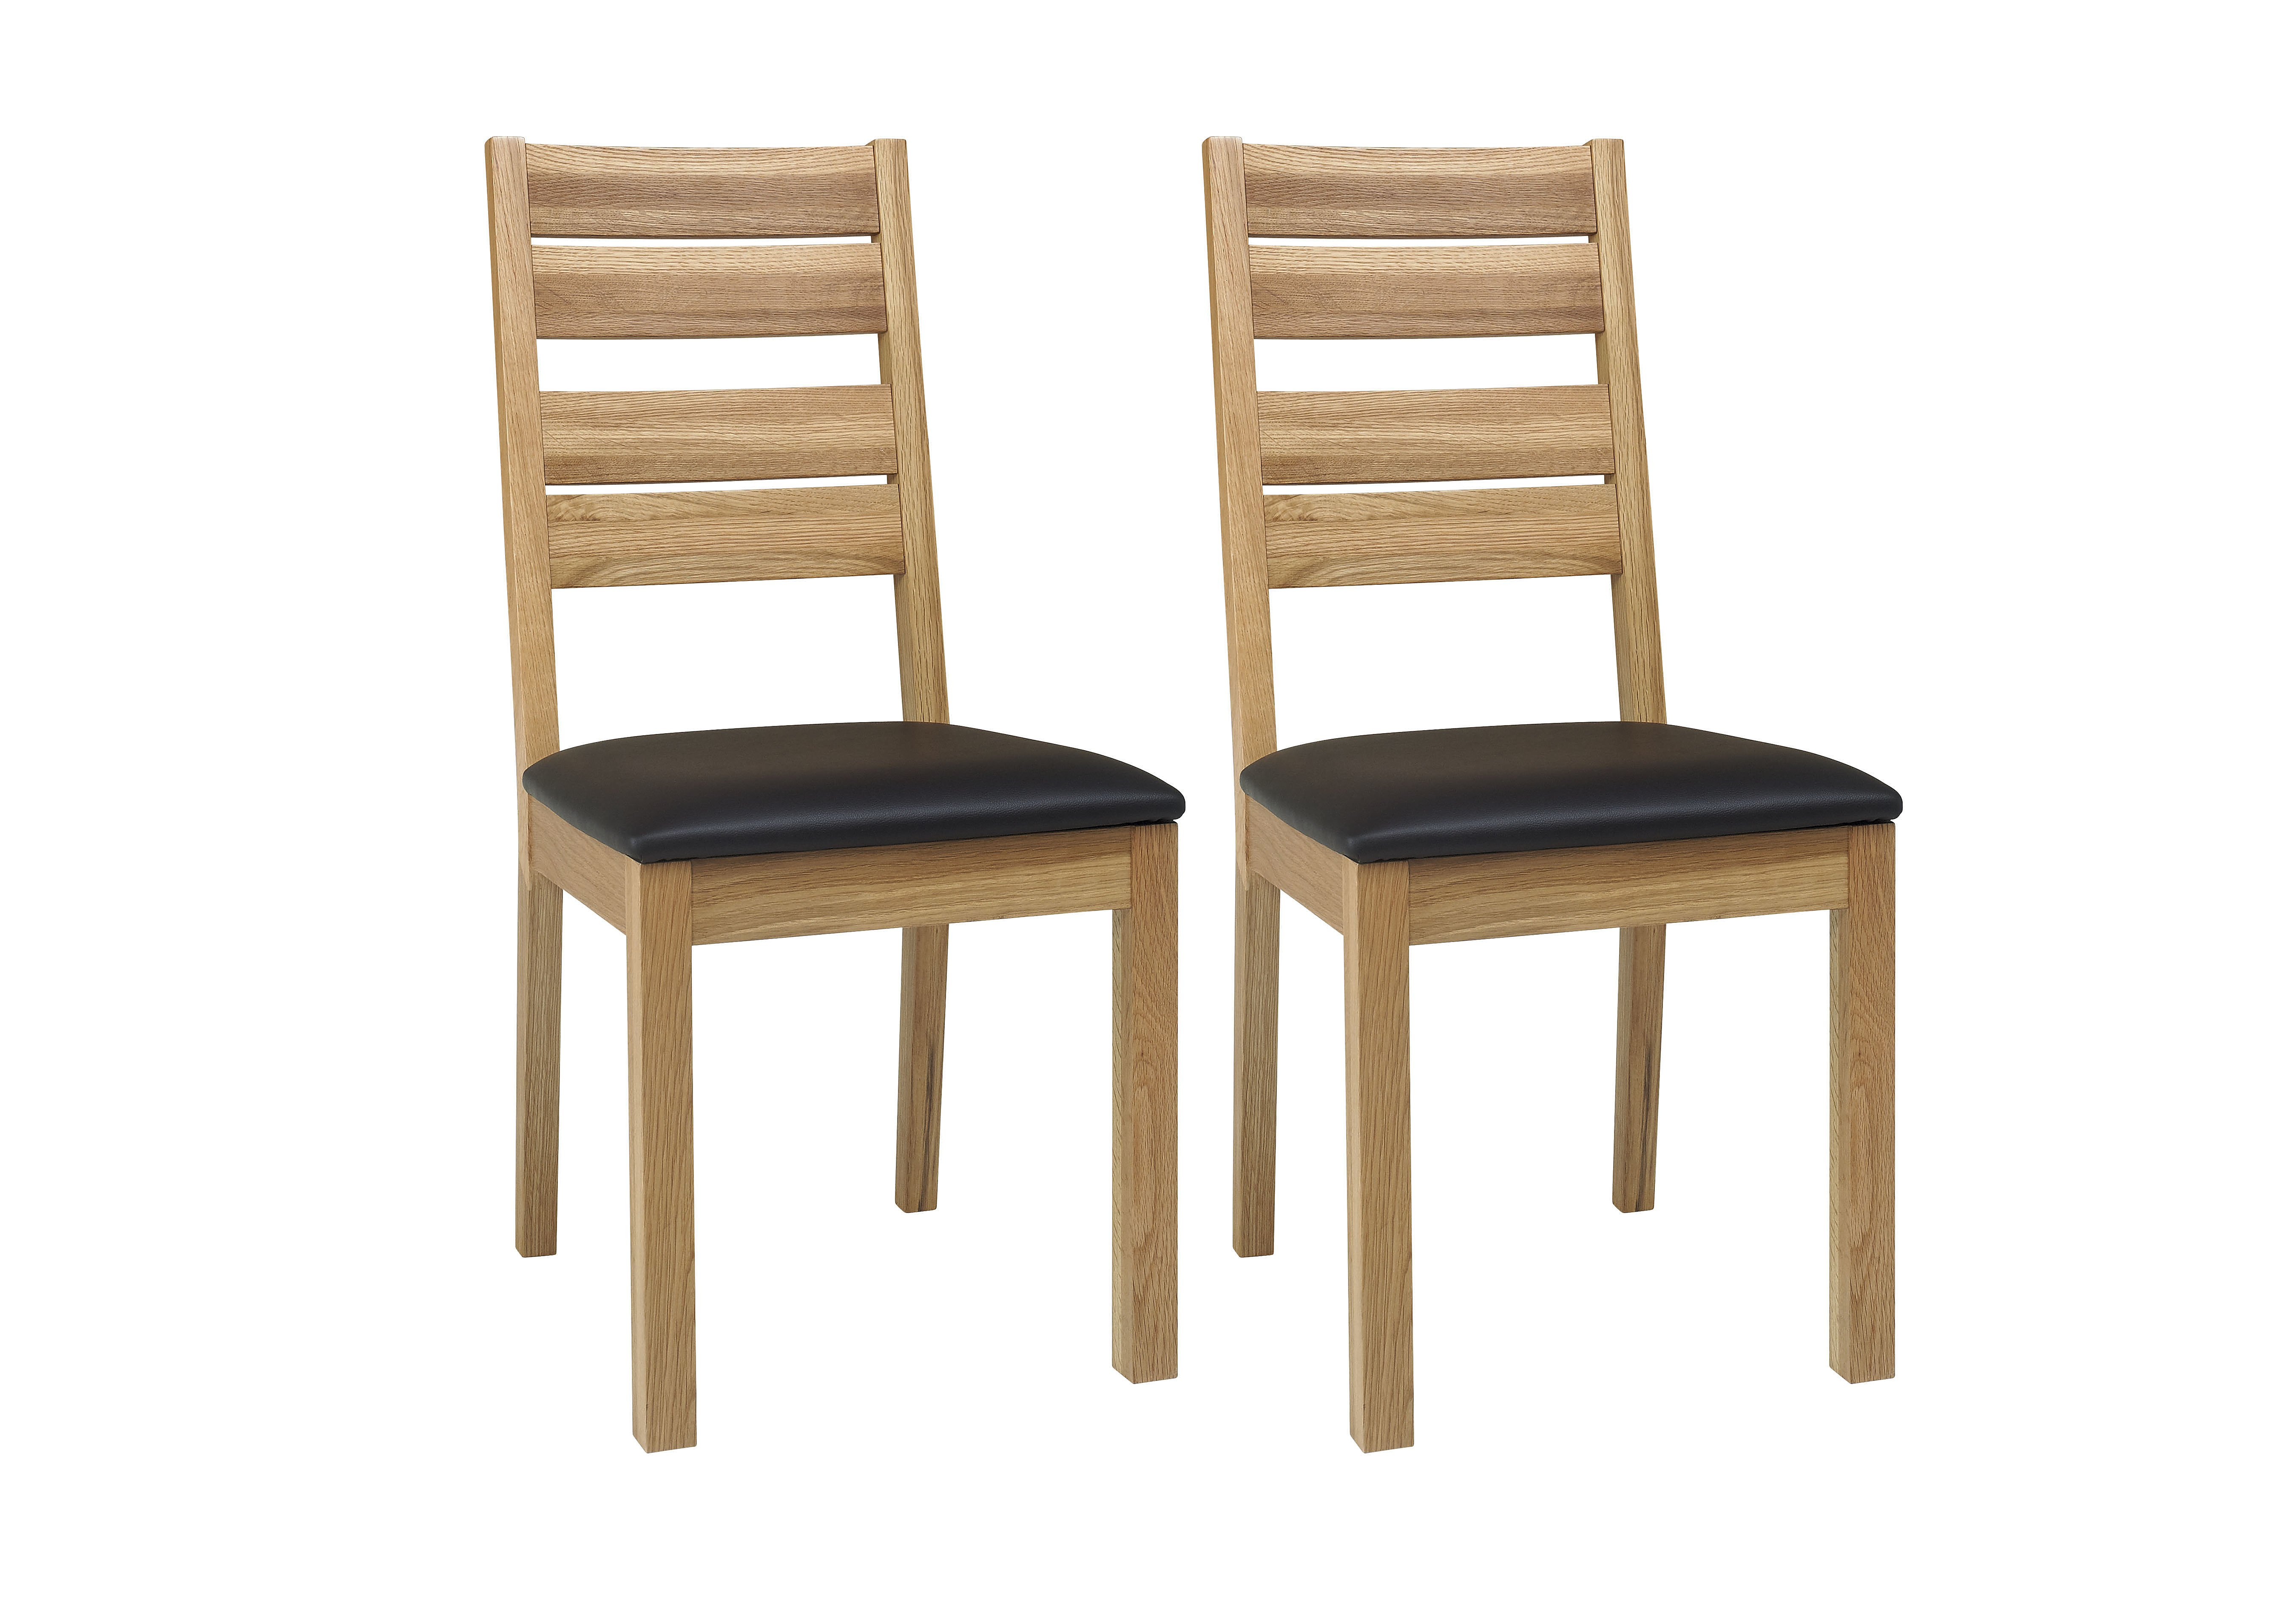 Oak Dining Chairs Oak Dining Room ChairsOak Dining Chairs eBay